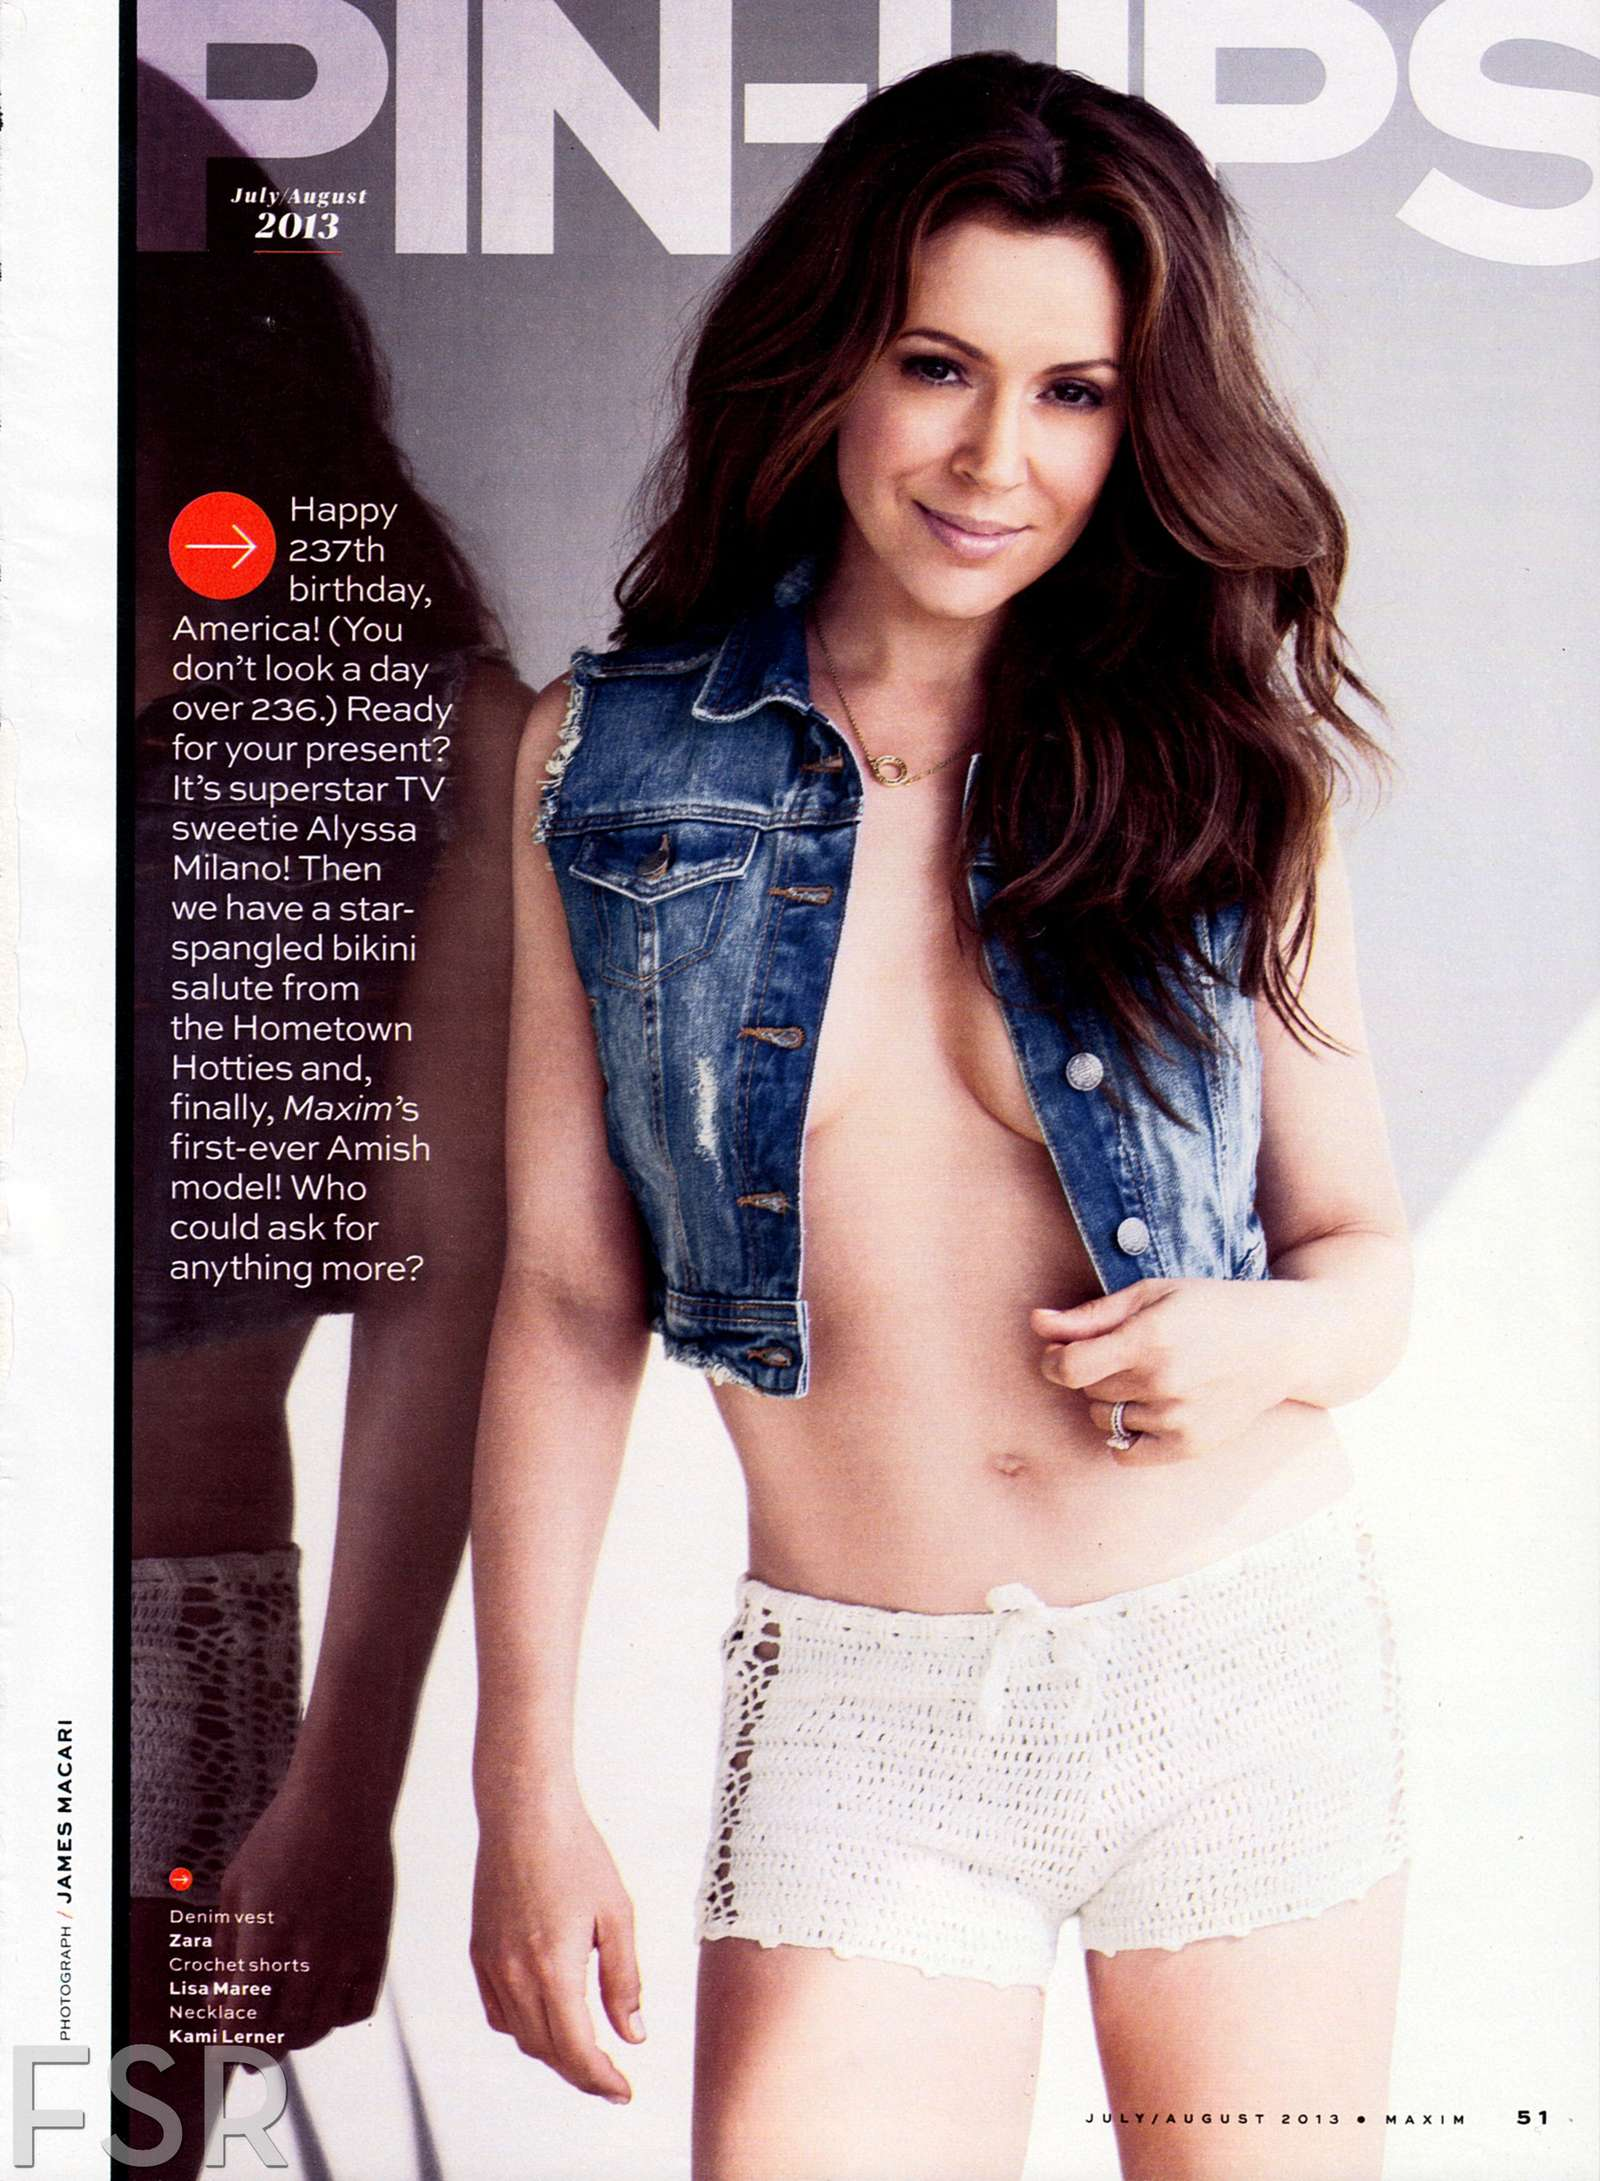 Alyssa Milano Breast Implants actresses who still look good after 40 years old - page 193